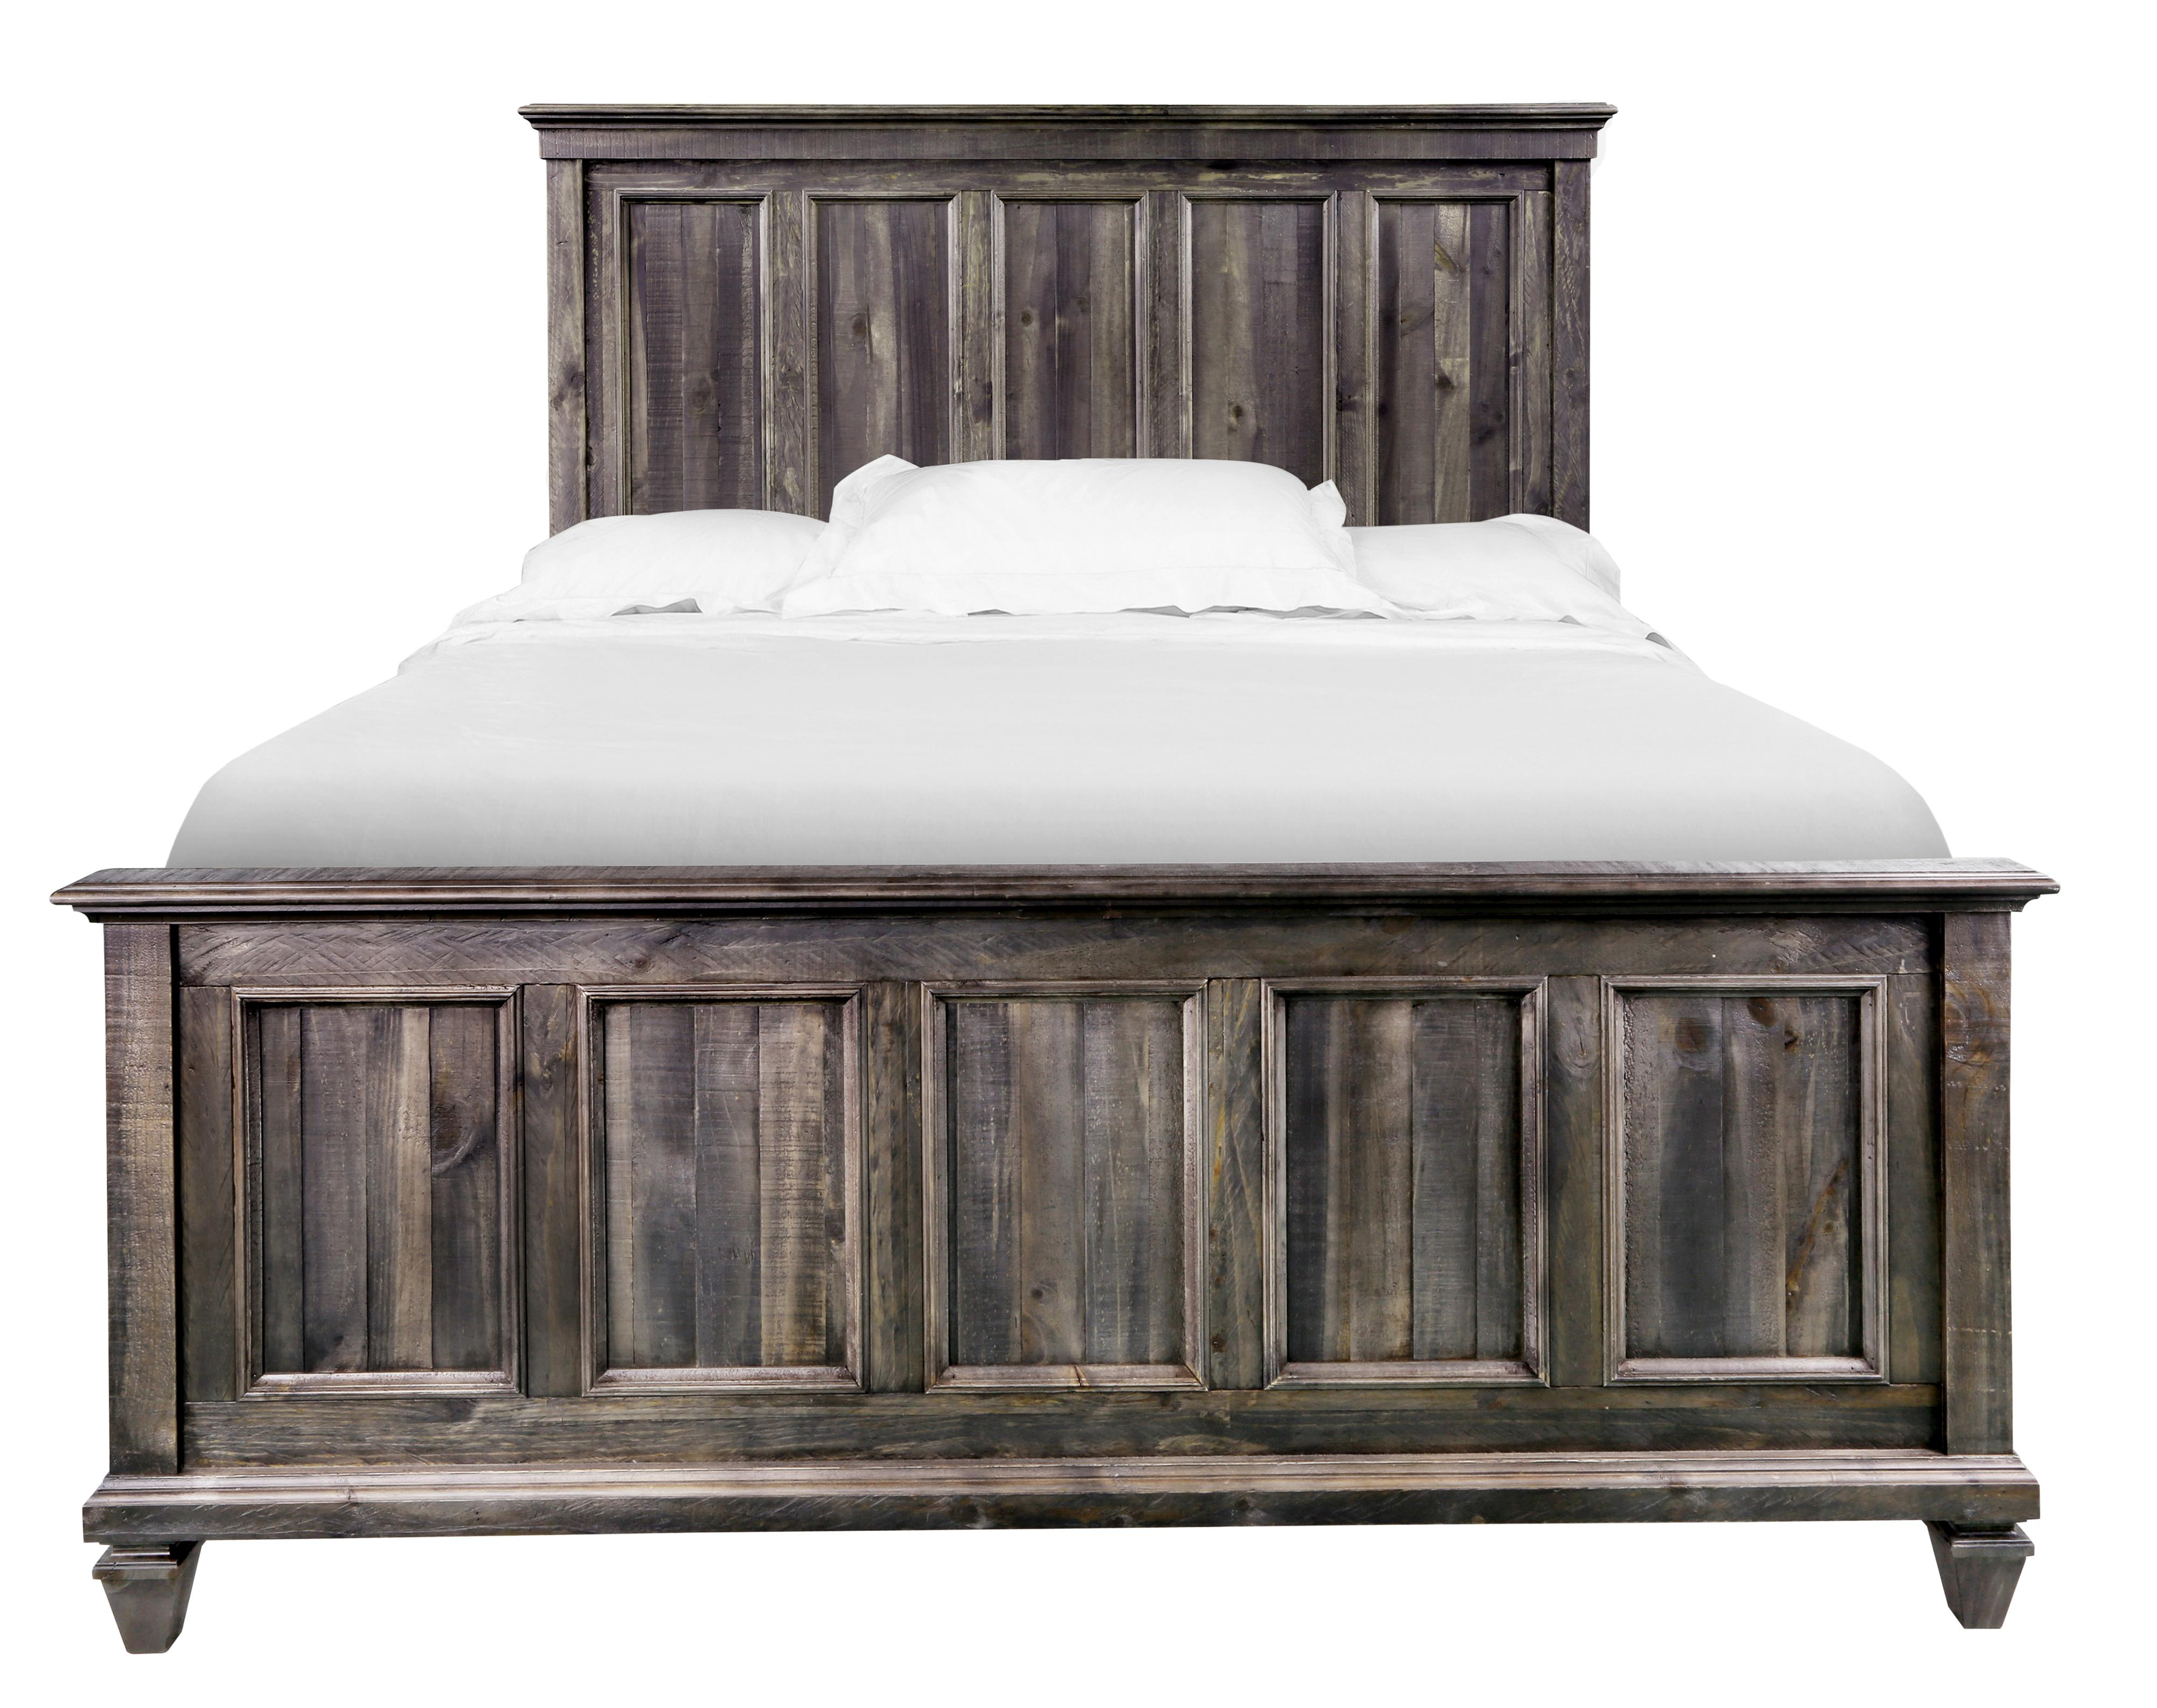 King Panel Bed with Headboard and Footboard